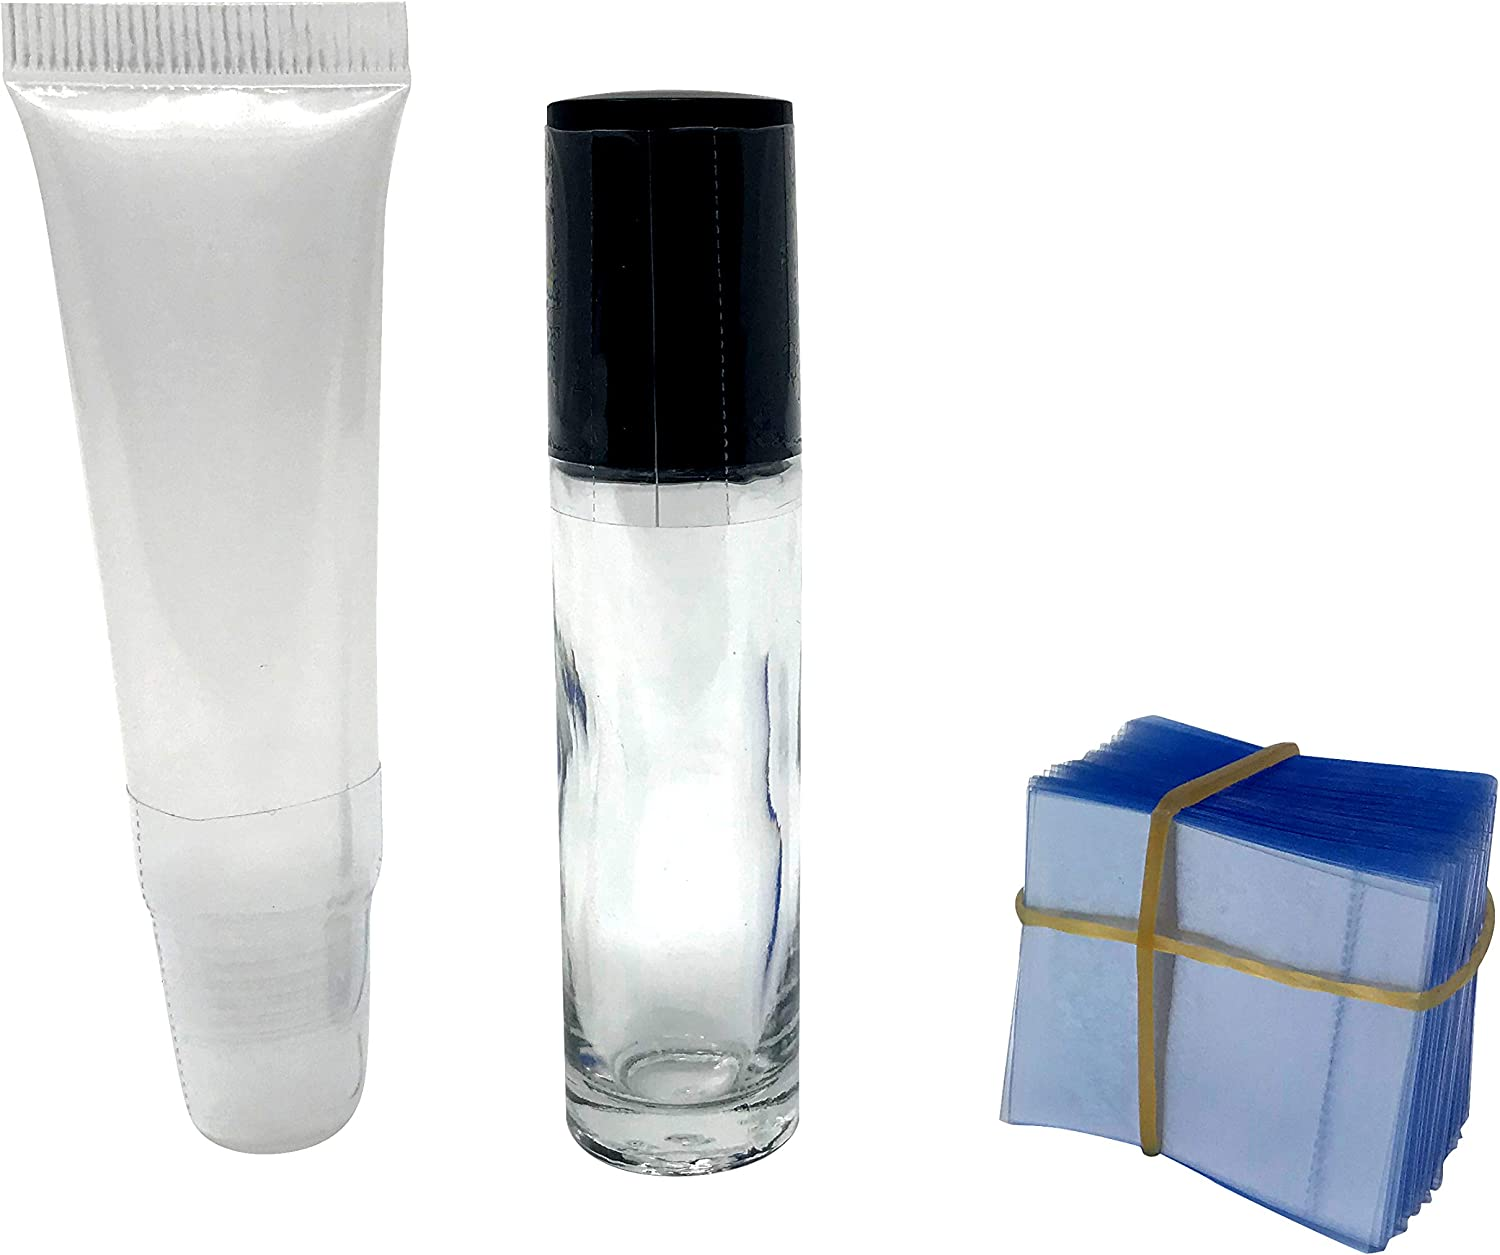 Clear Perforated Shrink Band for Lip Gloss Squeeze Tubes and Small Roll-On Bottles 250 Pack